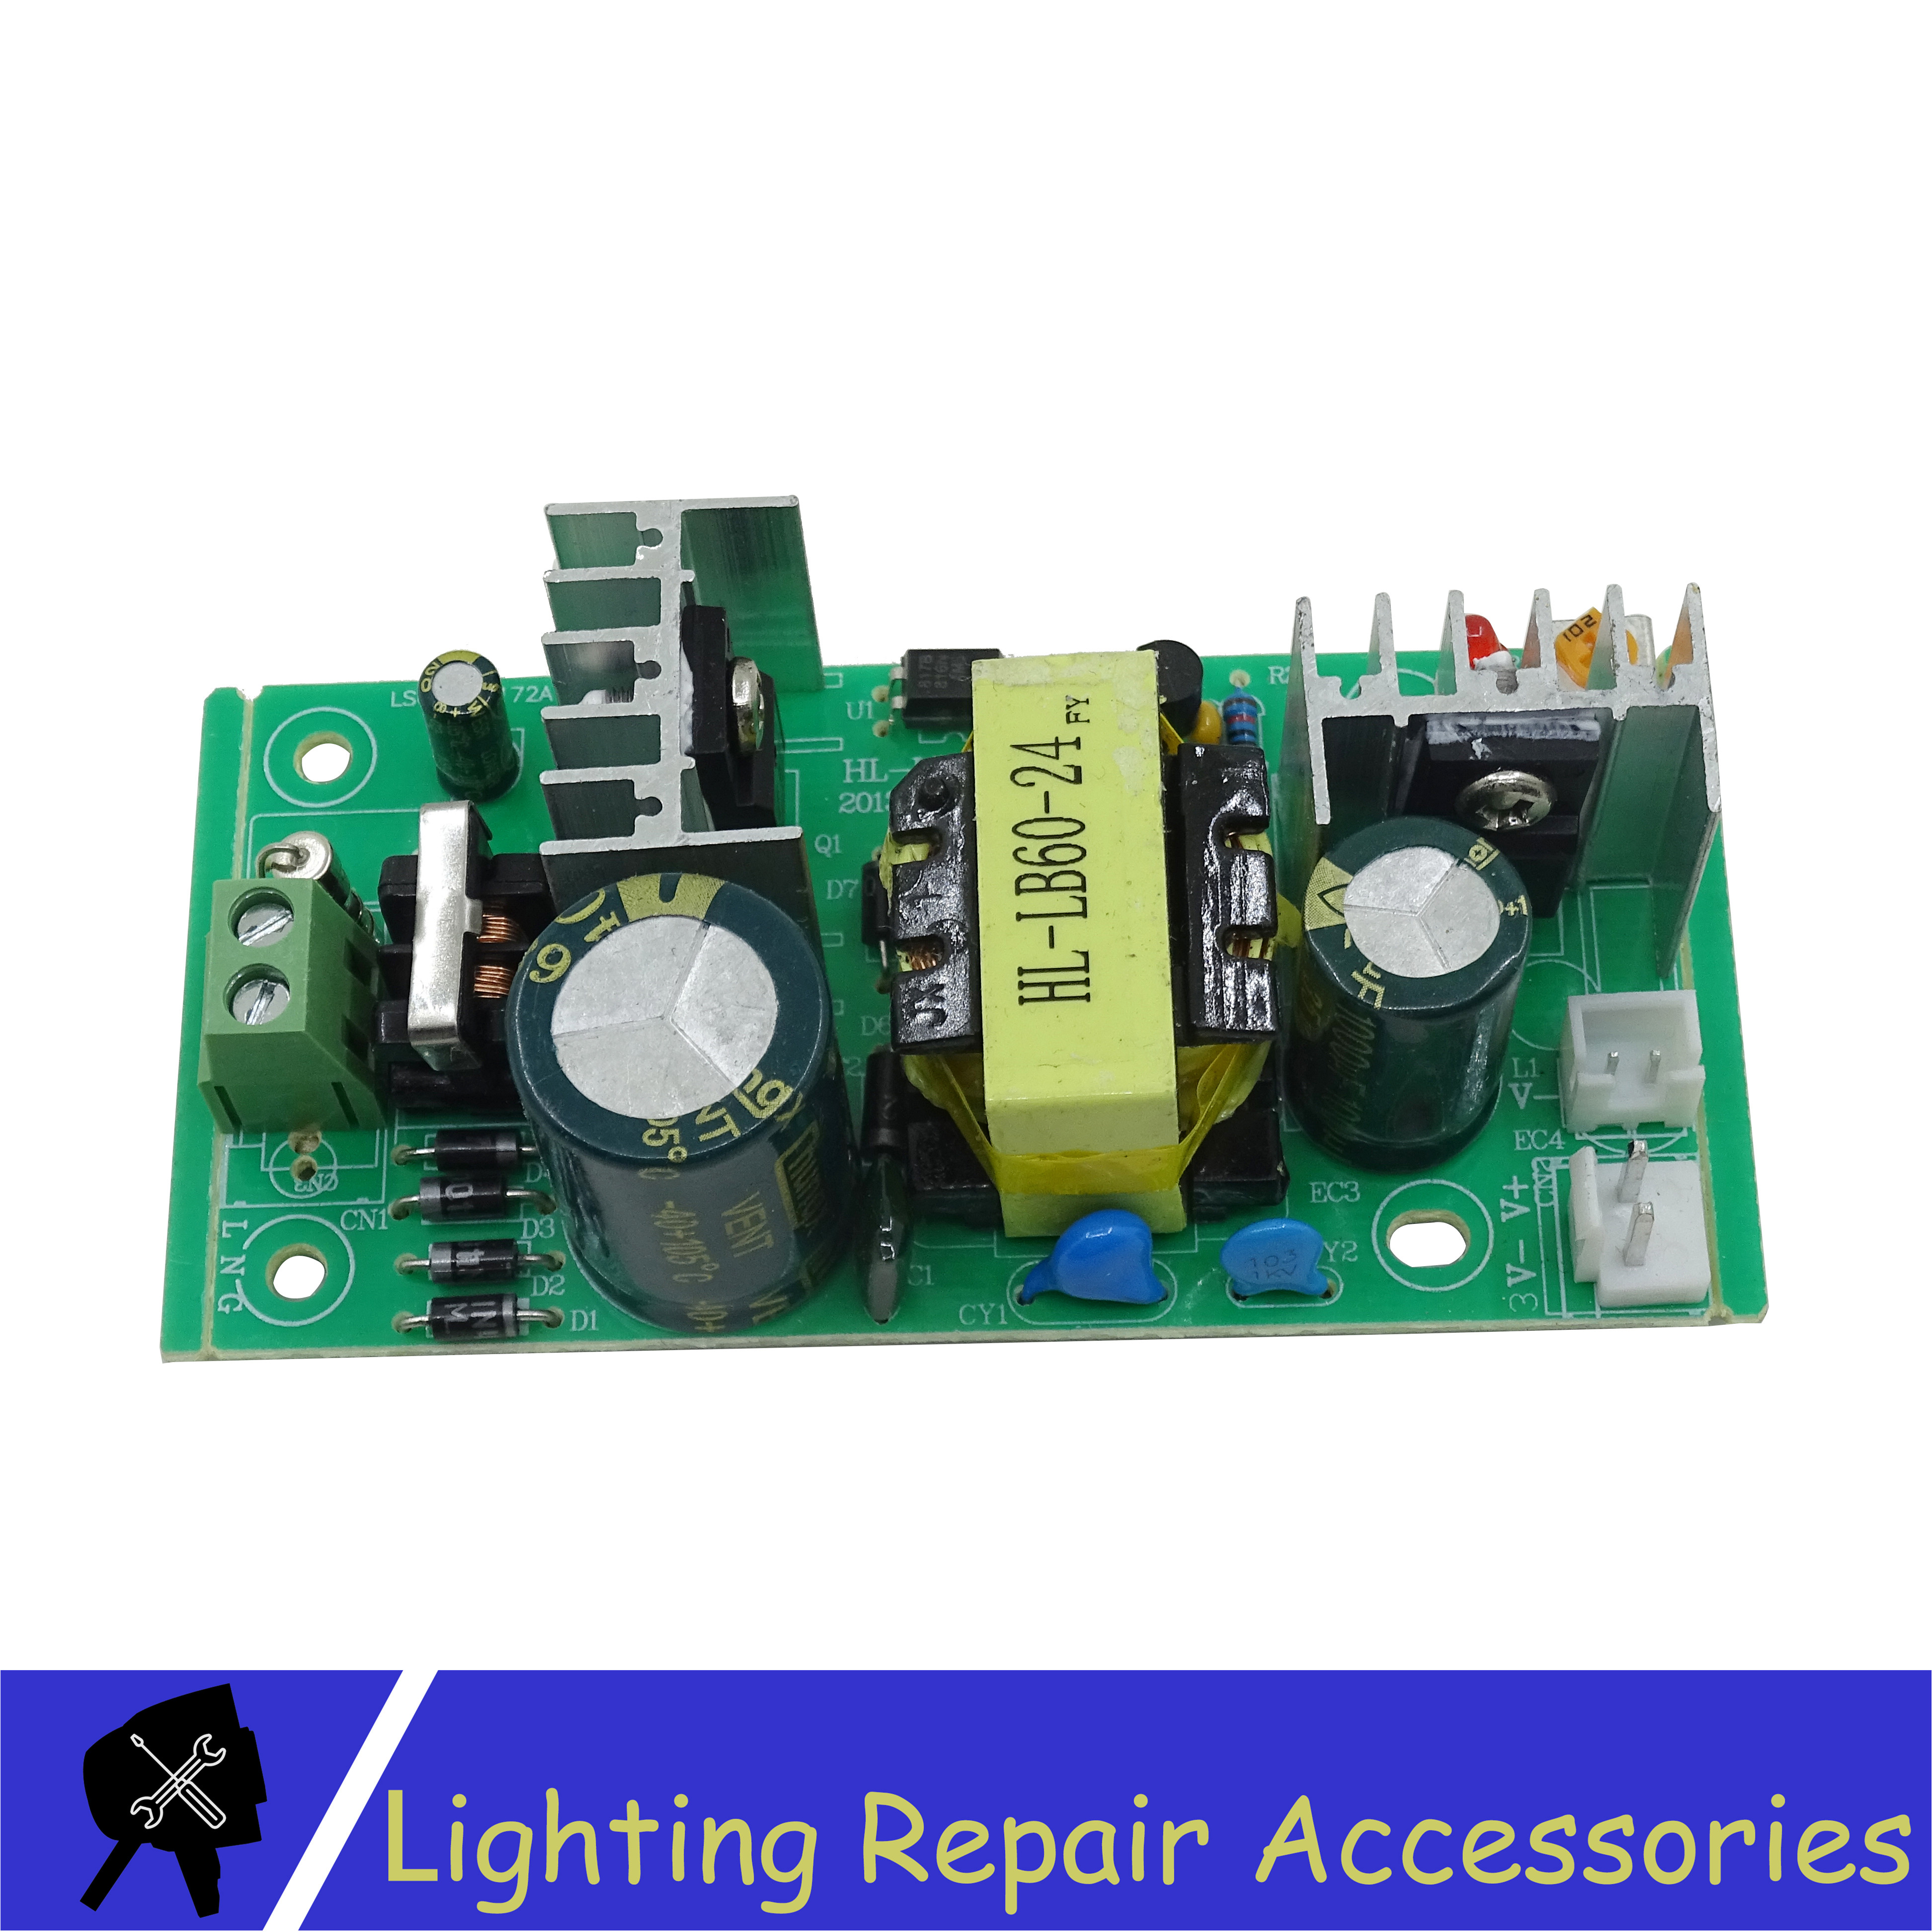 60w 24V 2.5A Power Supply Stage Light Accessories For <font><b>12x12w</b></font> 54x1w RGBW Plastic <font><b>Led</b></font> <font><b>par</b></font> light image